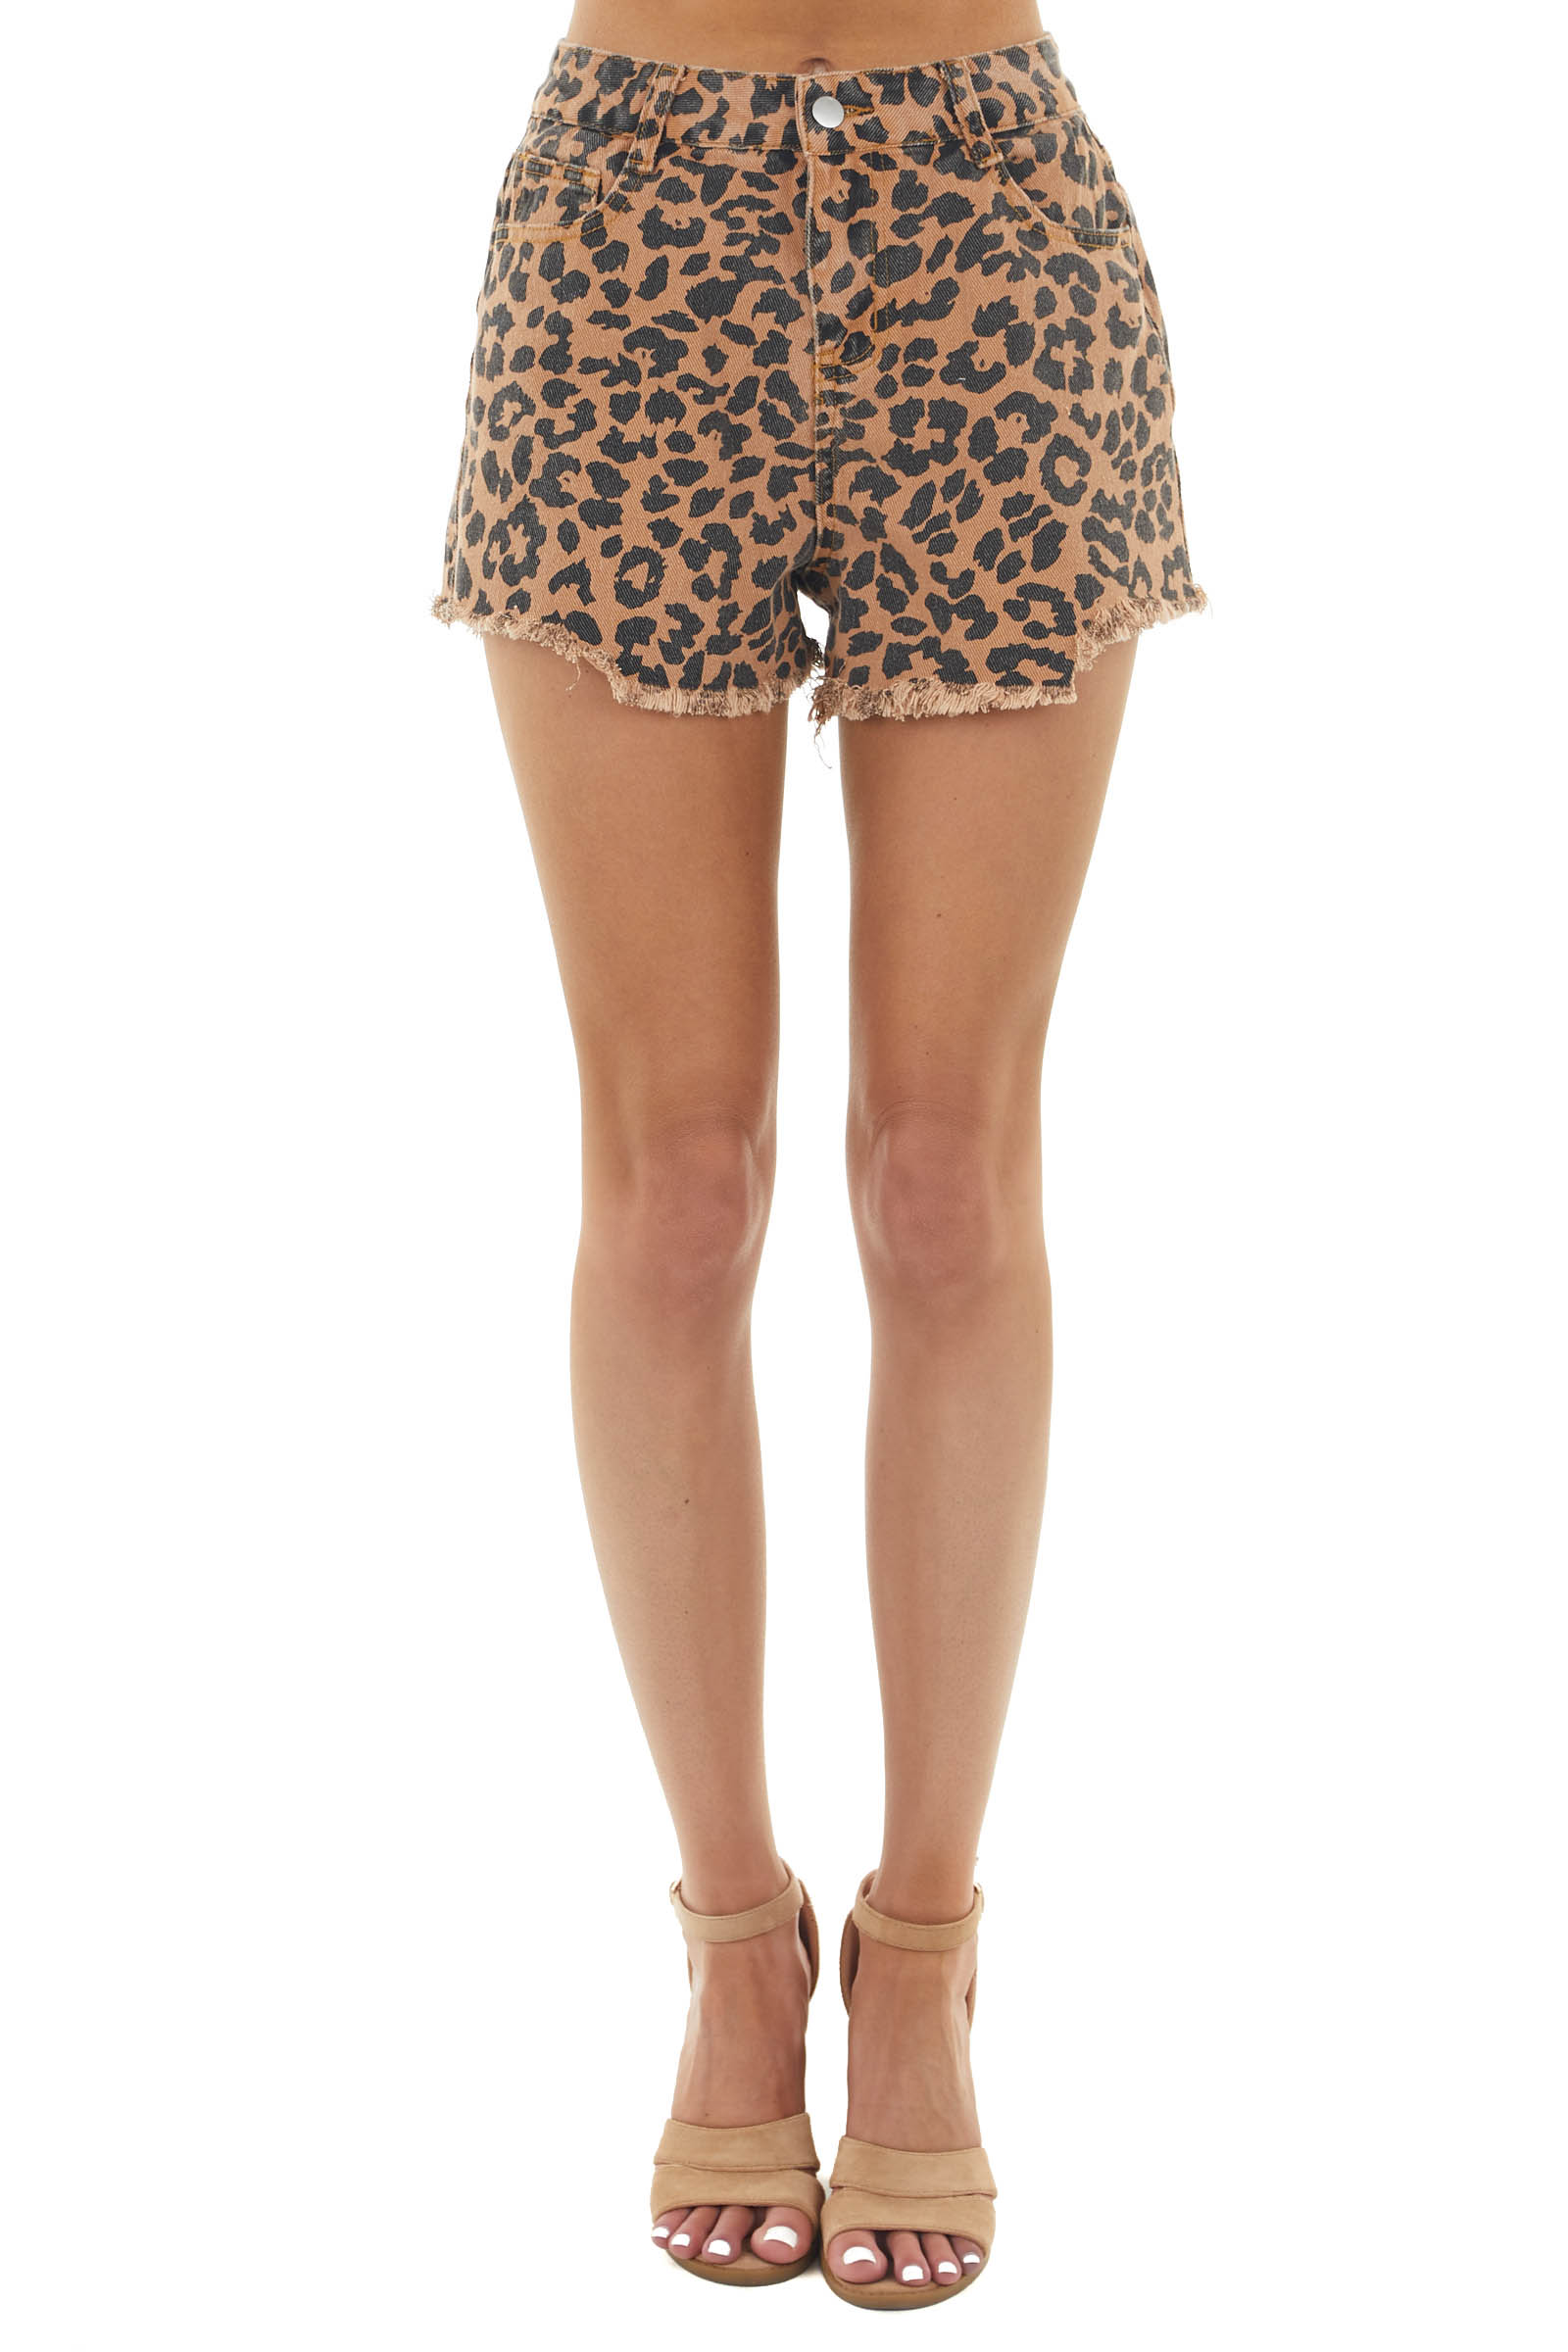 Caramel and Charcoal Leopard Print Shorts with Frayed Hem